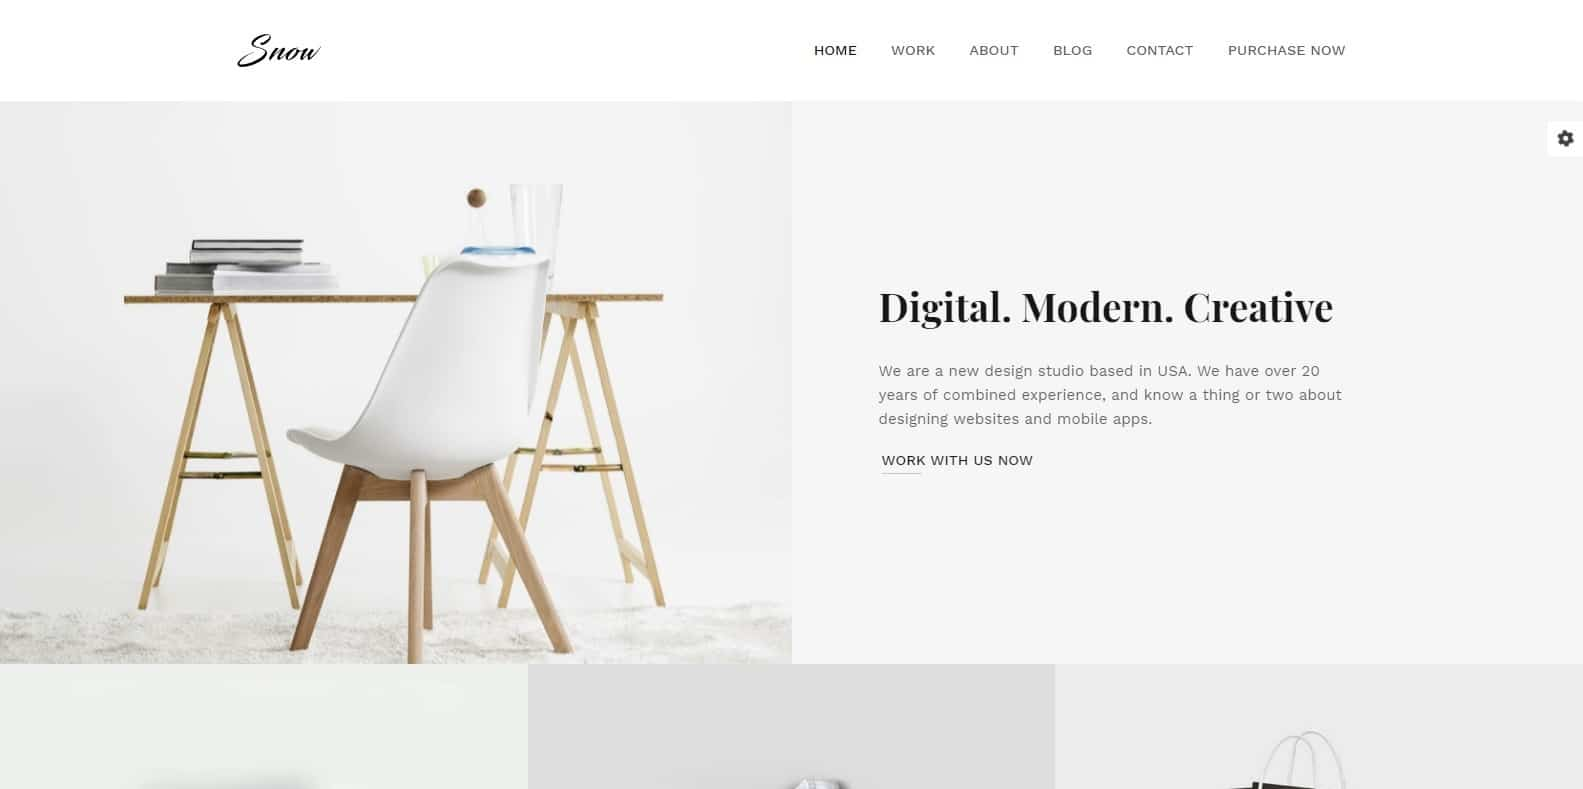 snow-gallery-website-template